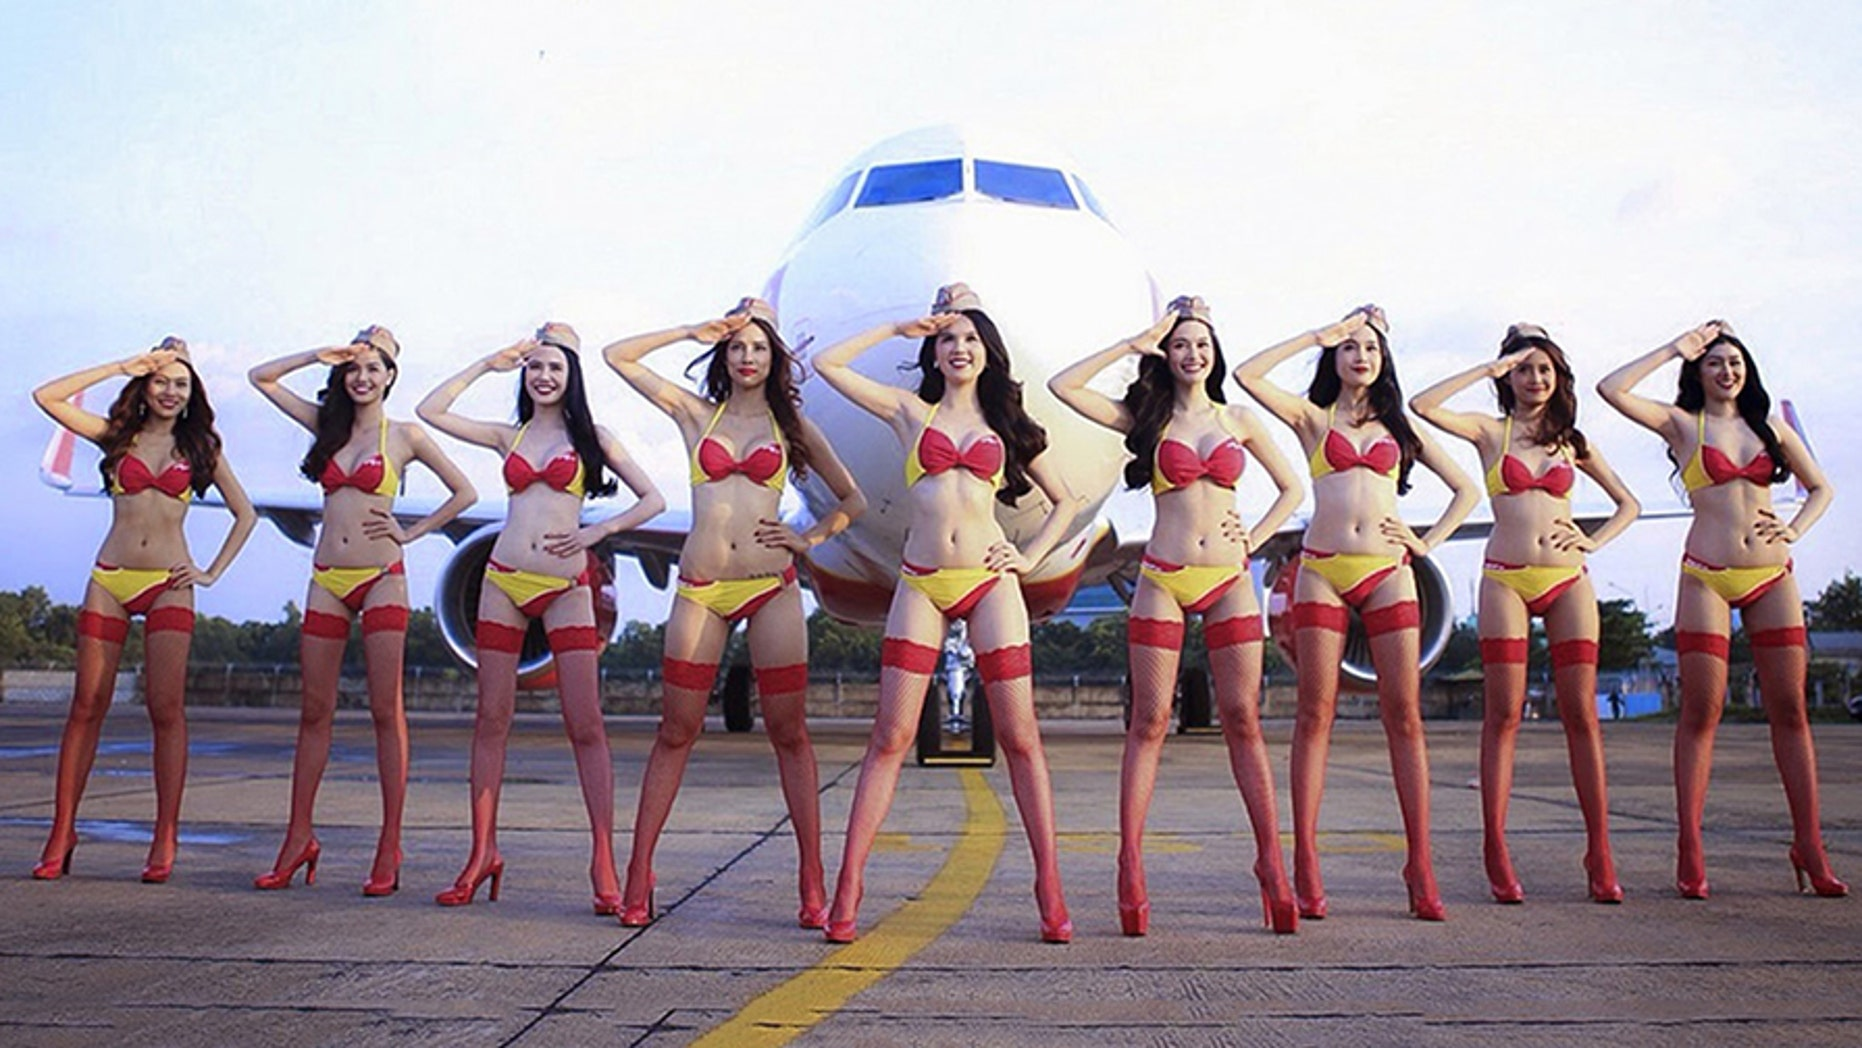 Models dressed in scantily-clad clothing put on an in-flight performance for Vietnam's under-23 soccer team Sunday, Jan. 28, 2018.